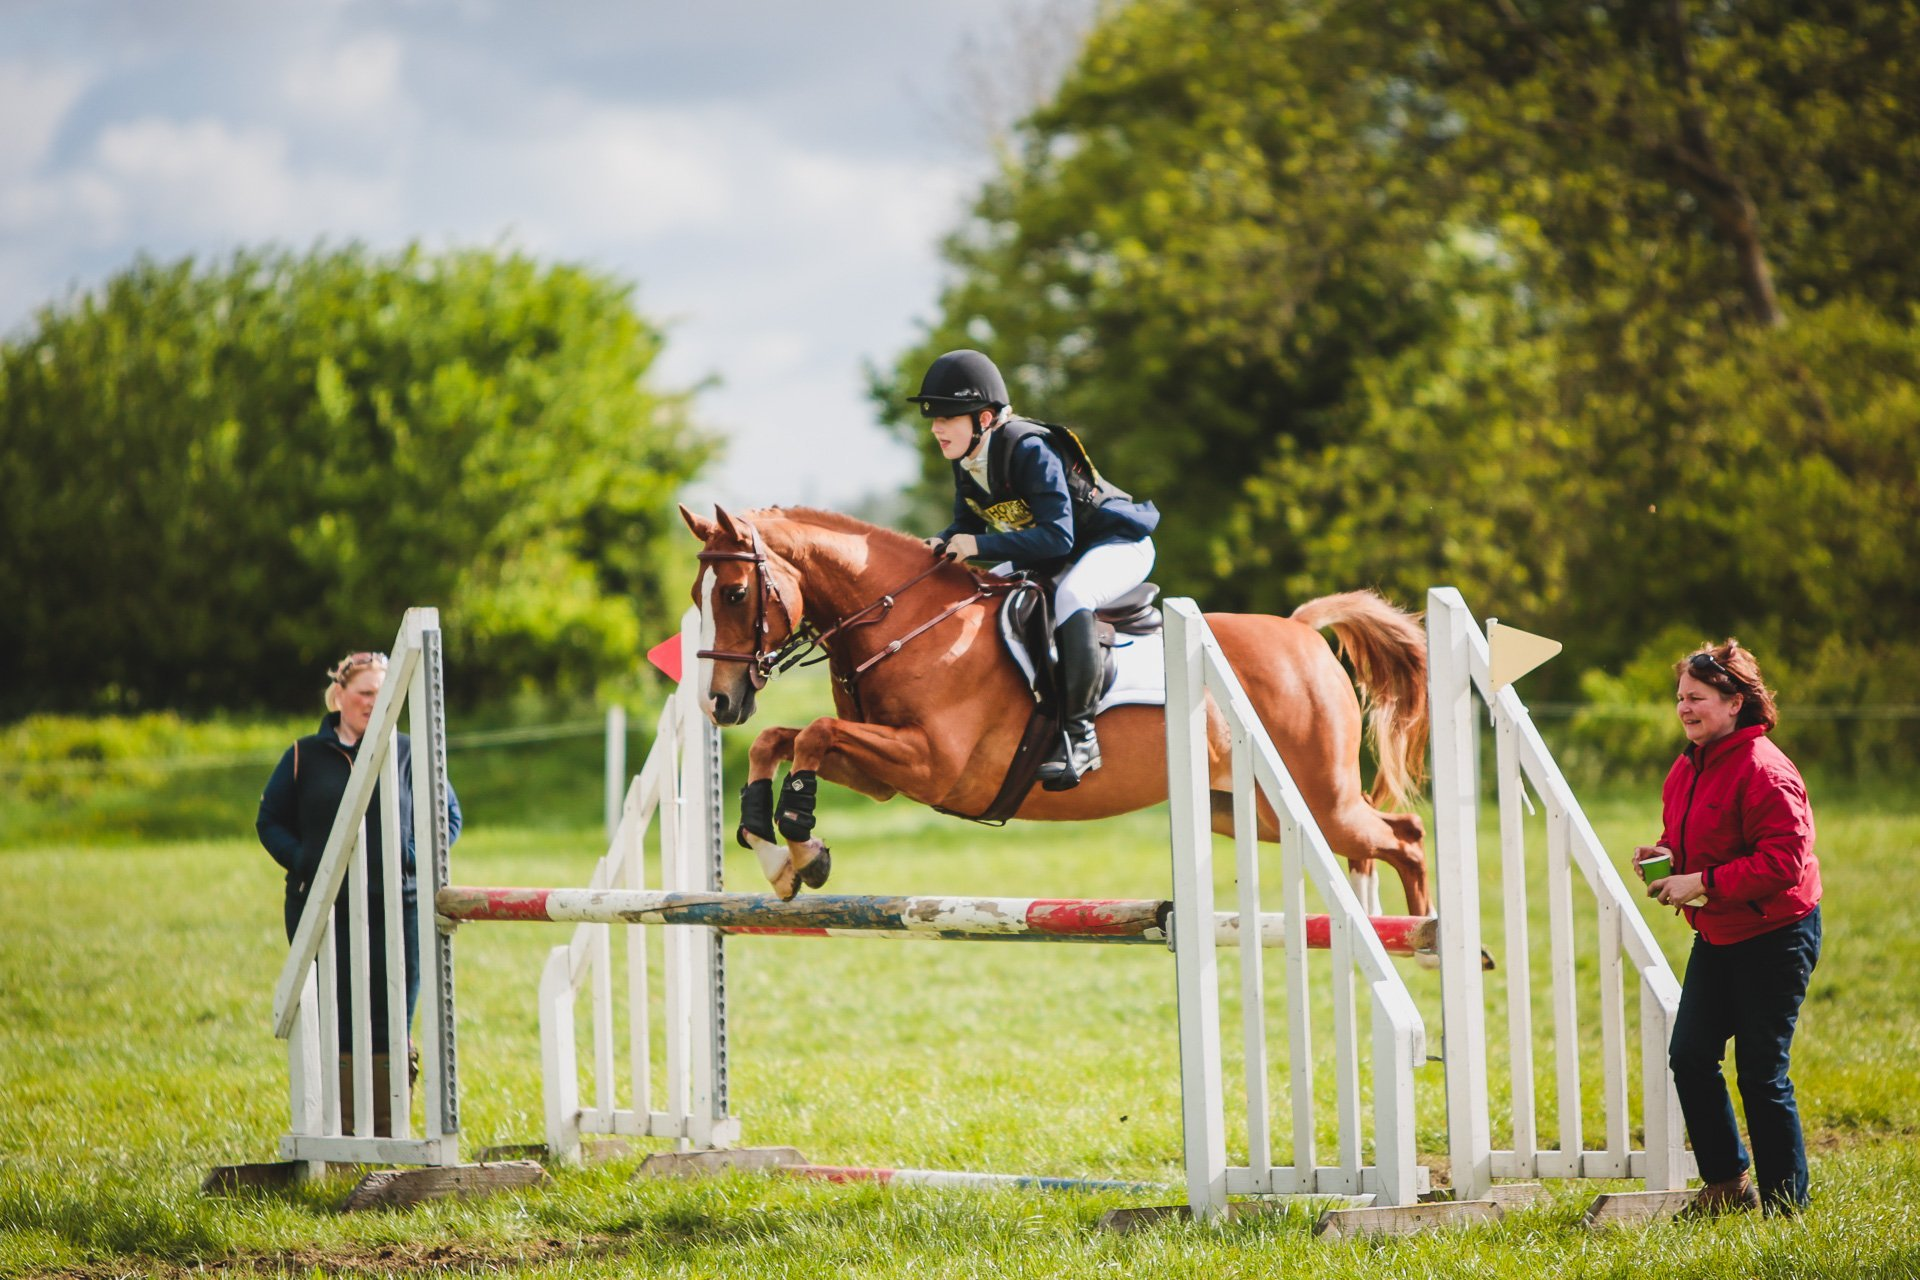 in the sj practice ring at Llanymynech HT